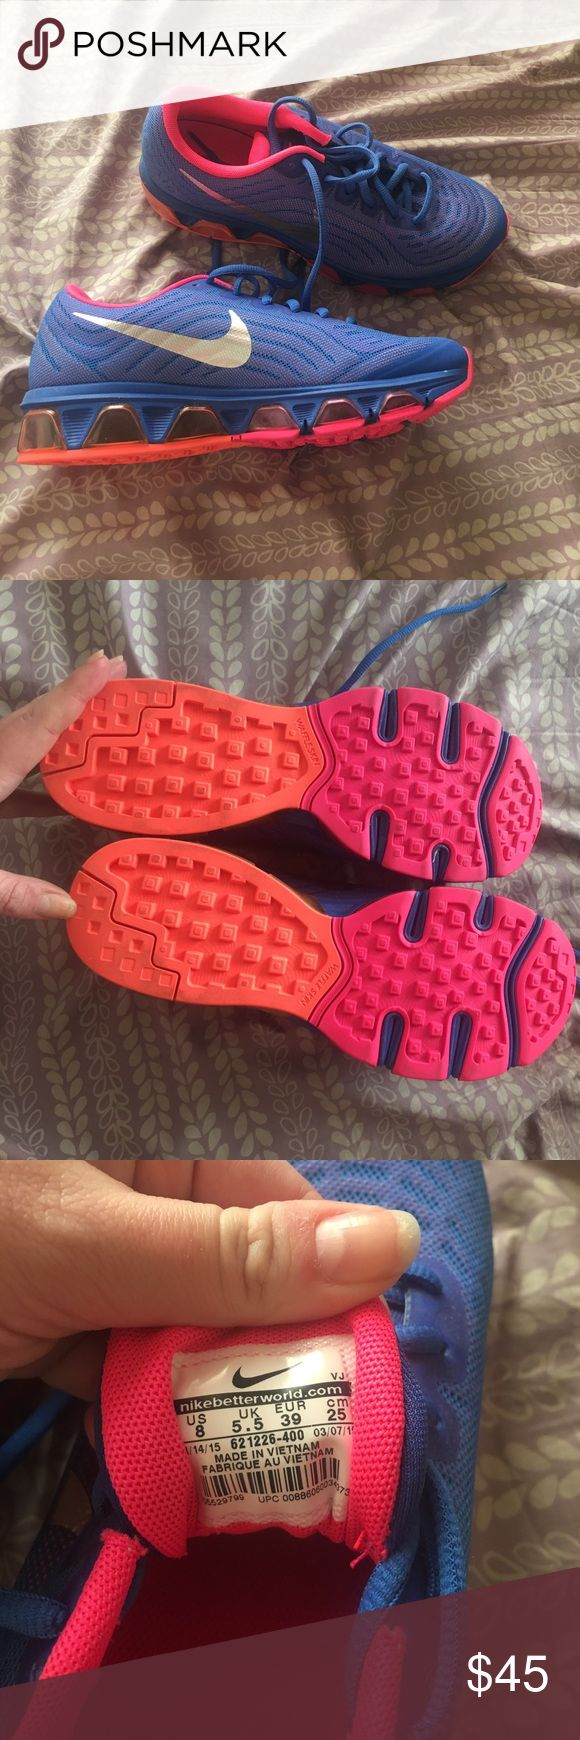 Nike Air Tailwind 6 Fit Sole Running Shoes These shoes are in 100% perfect condition. Were given to me as a gift and I have never touched them! US size 8! Nike Shoes Sneakers